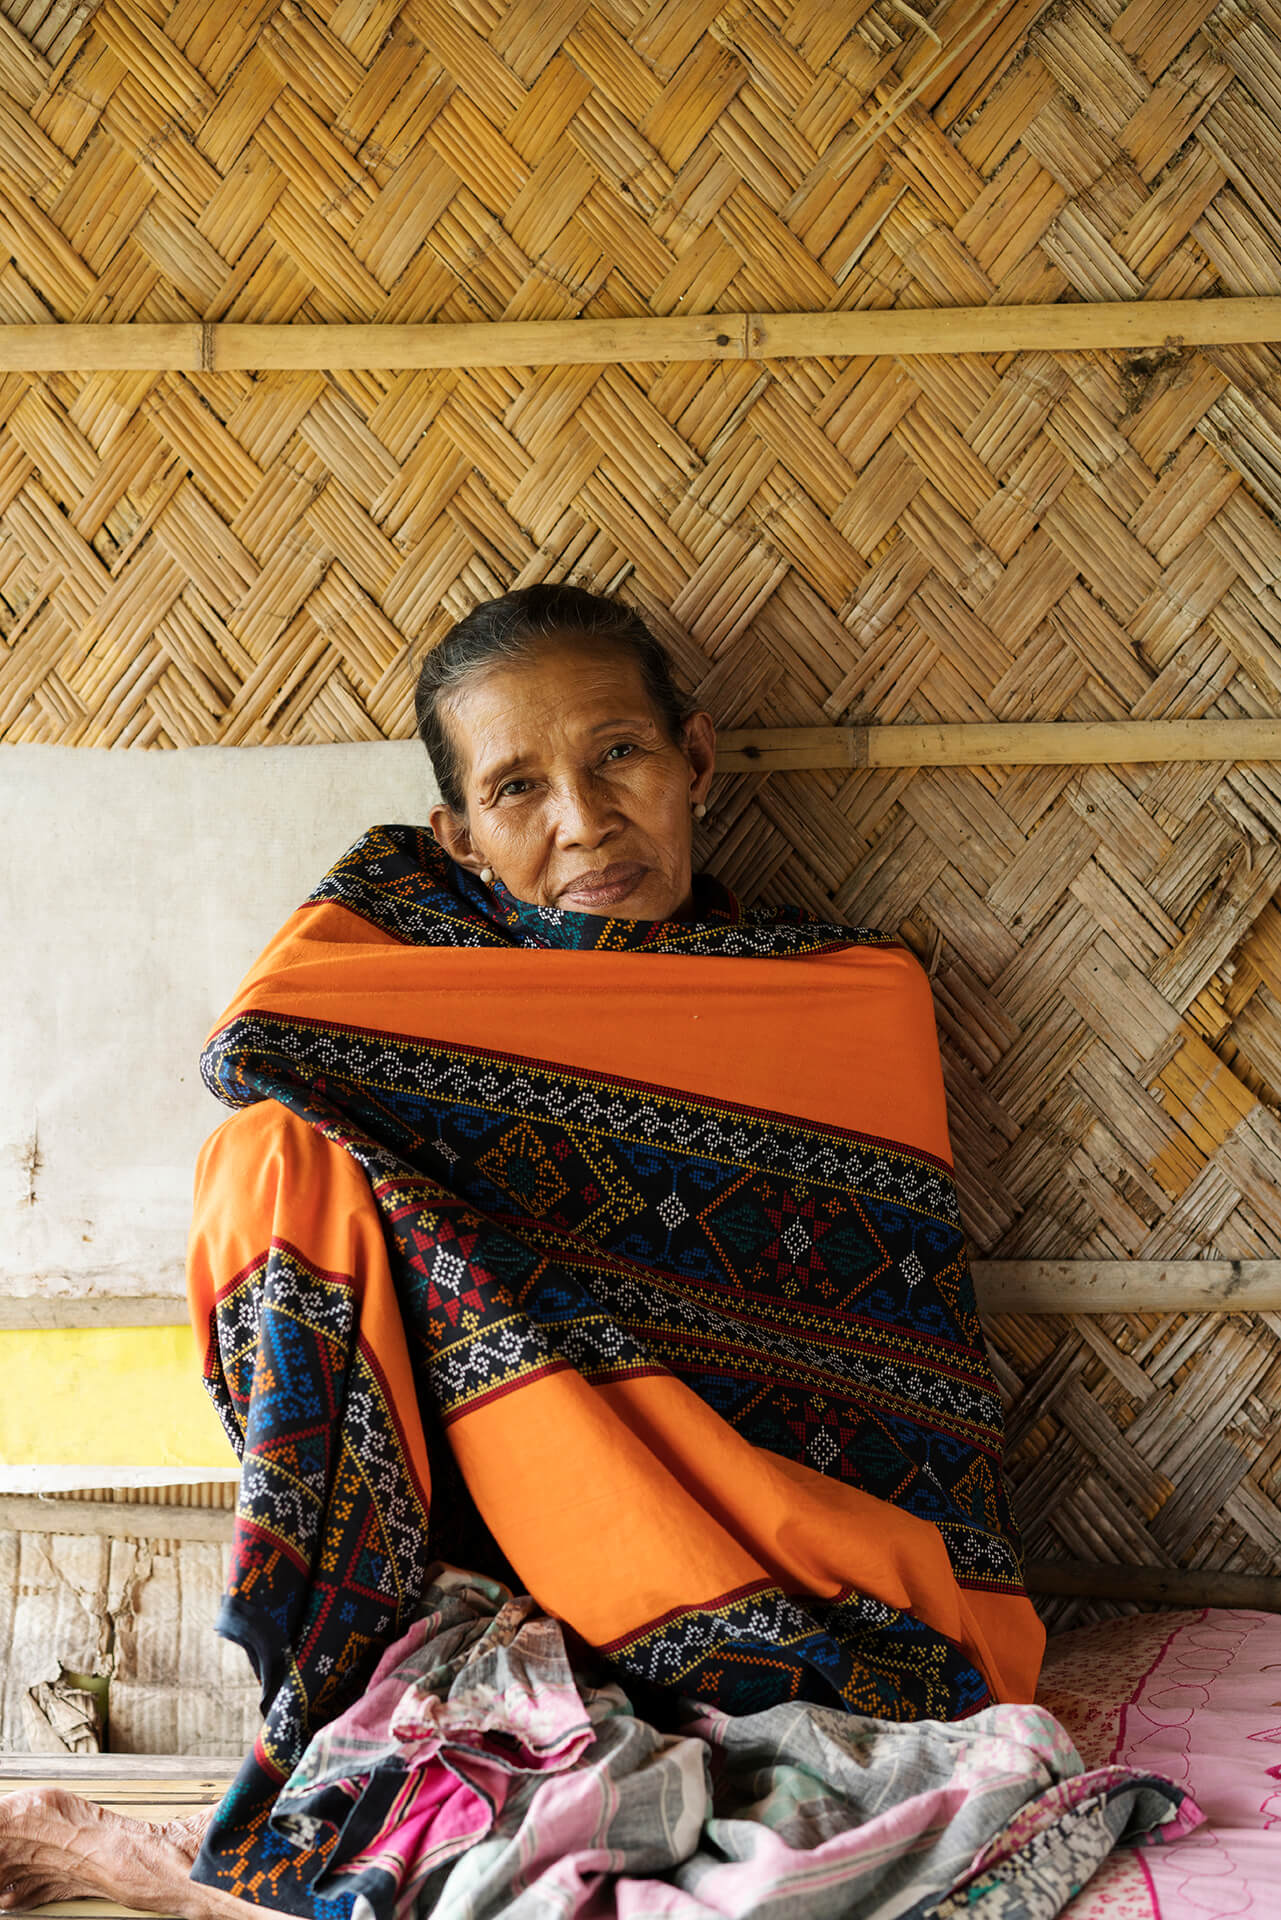 a Maguindanaoan woman wrapped in a tribal-designed fabric.